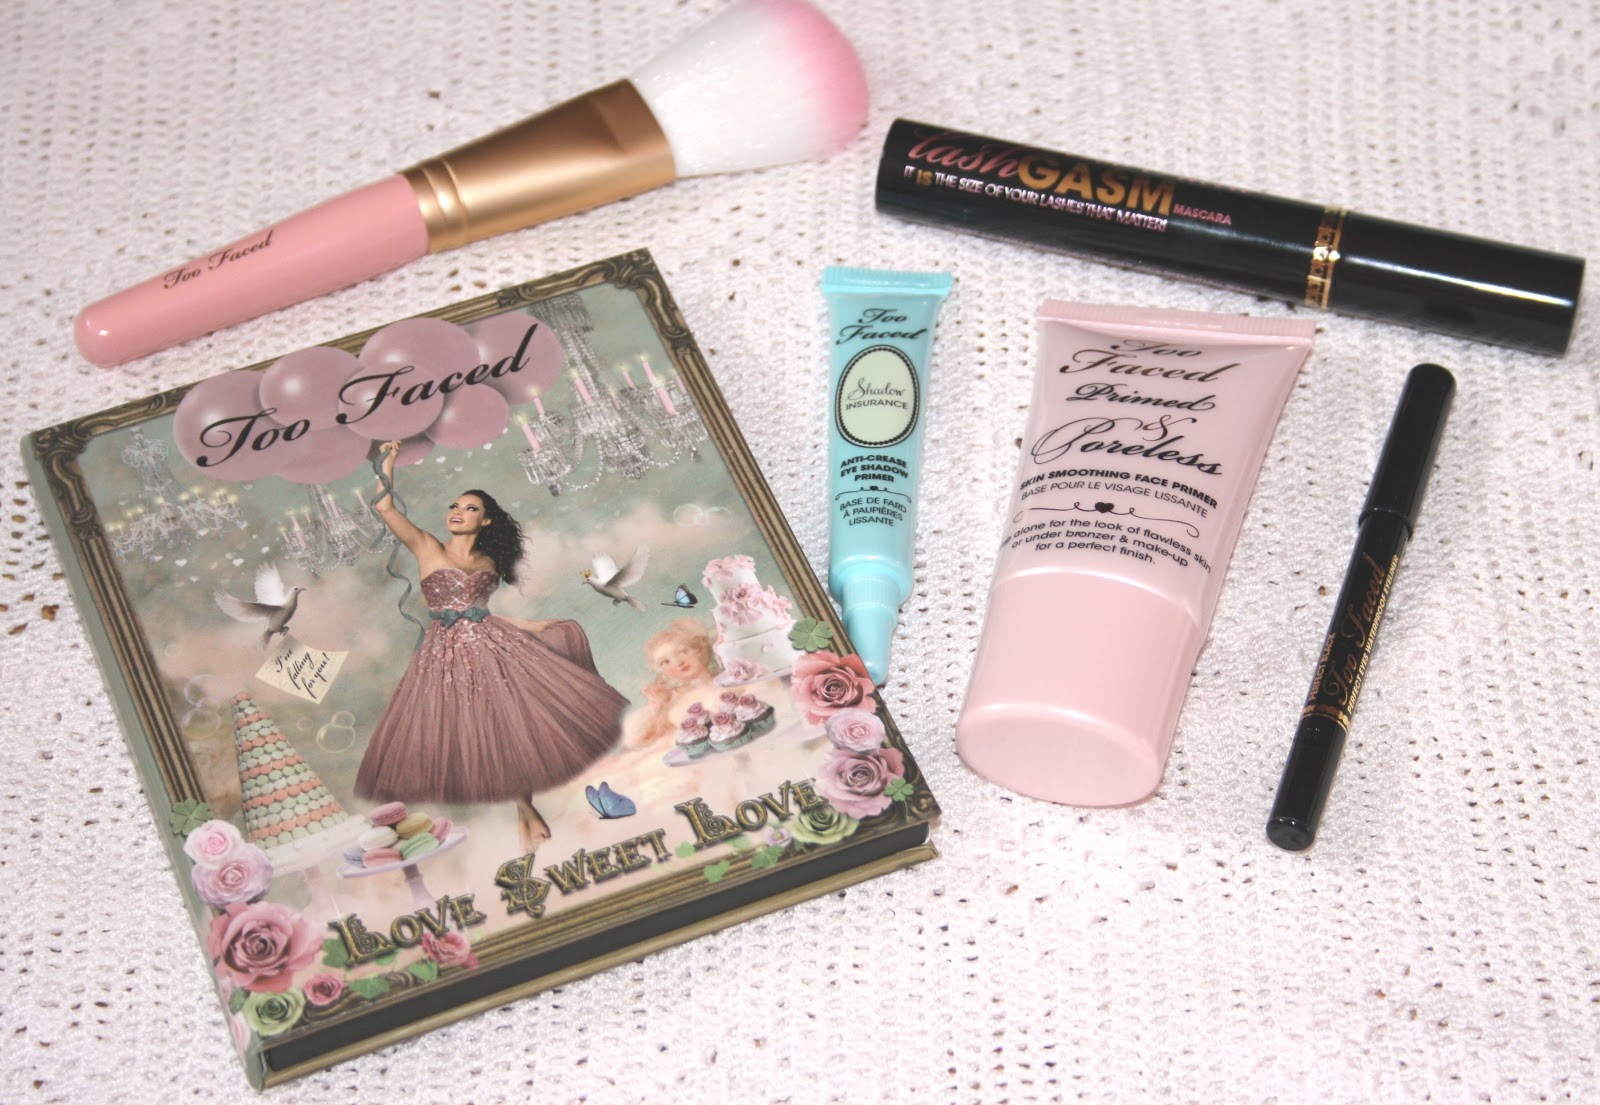 Too Faced Love Sweet Love Holiday Set: Review + Swatches | RosyChicc